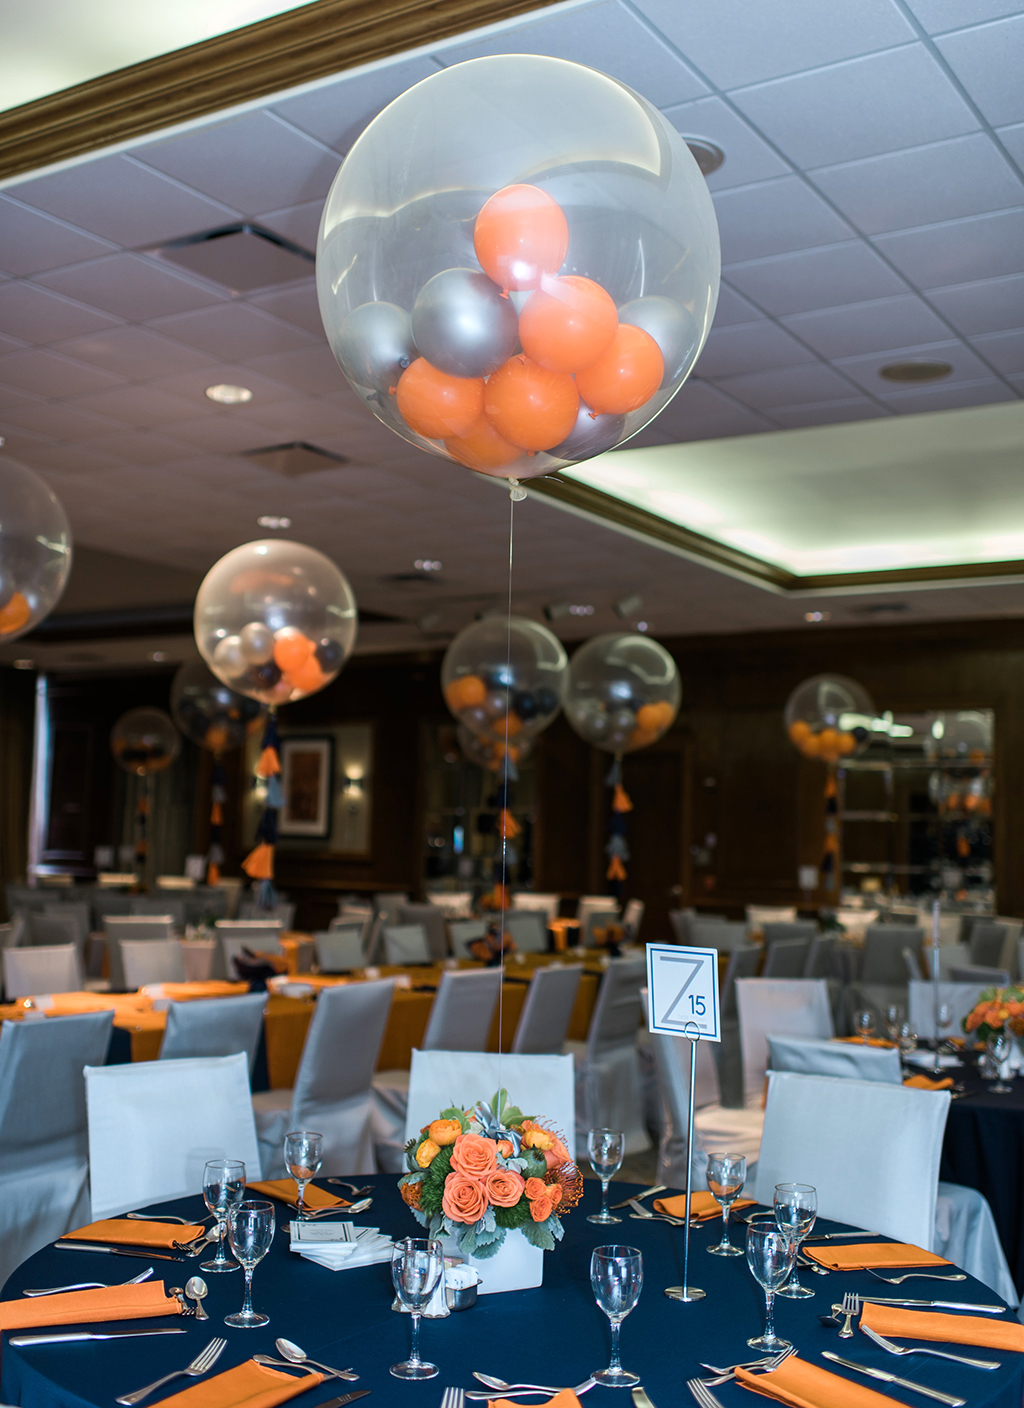 Bar Mitzvah Party with Navy tablecloths, navy and orange balloons and orange flowers